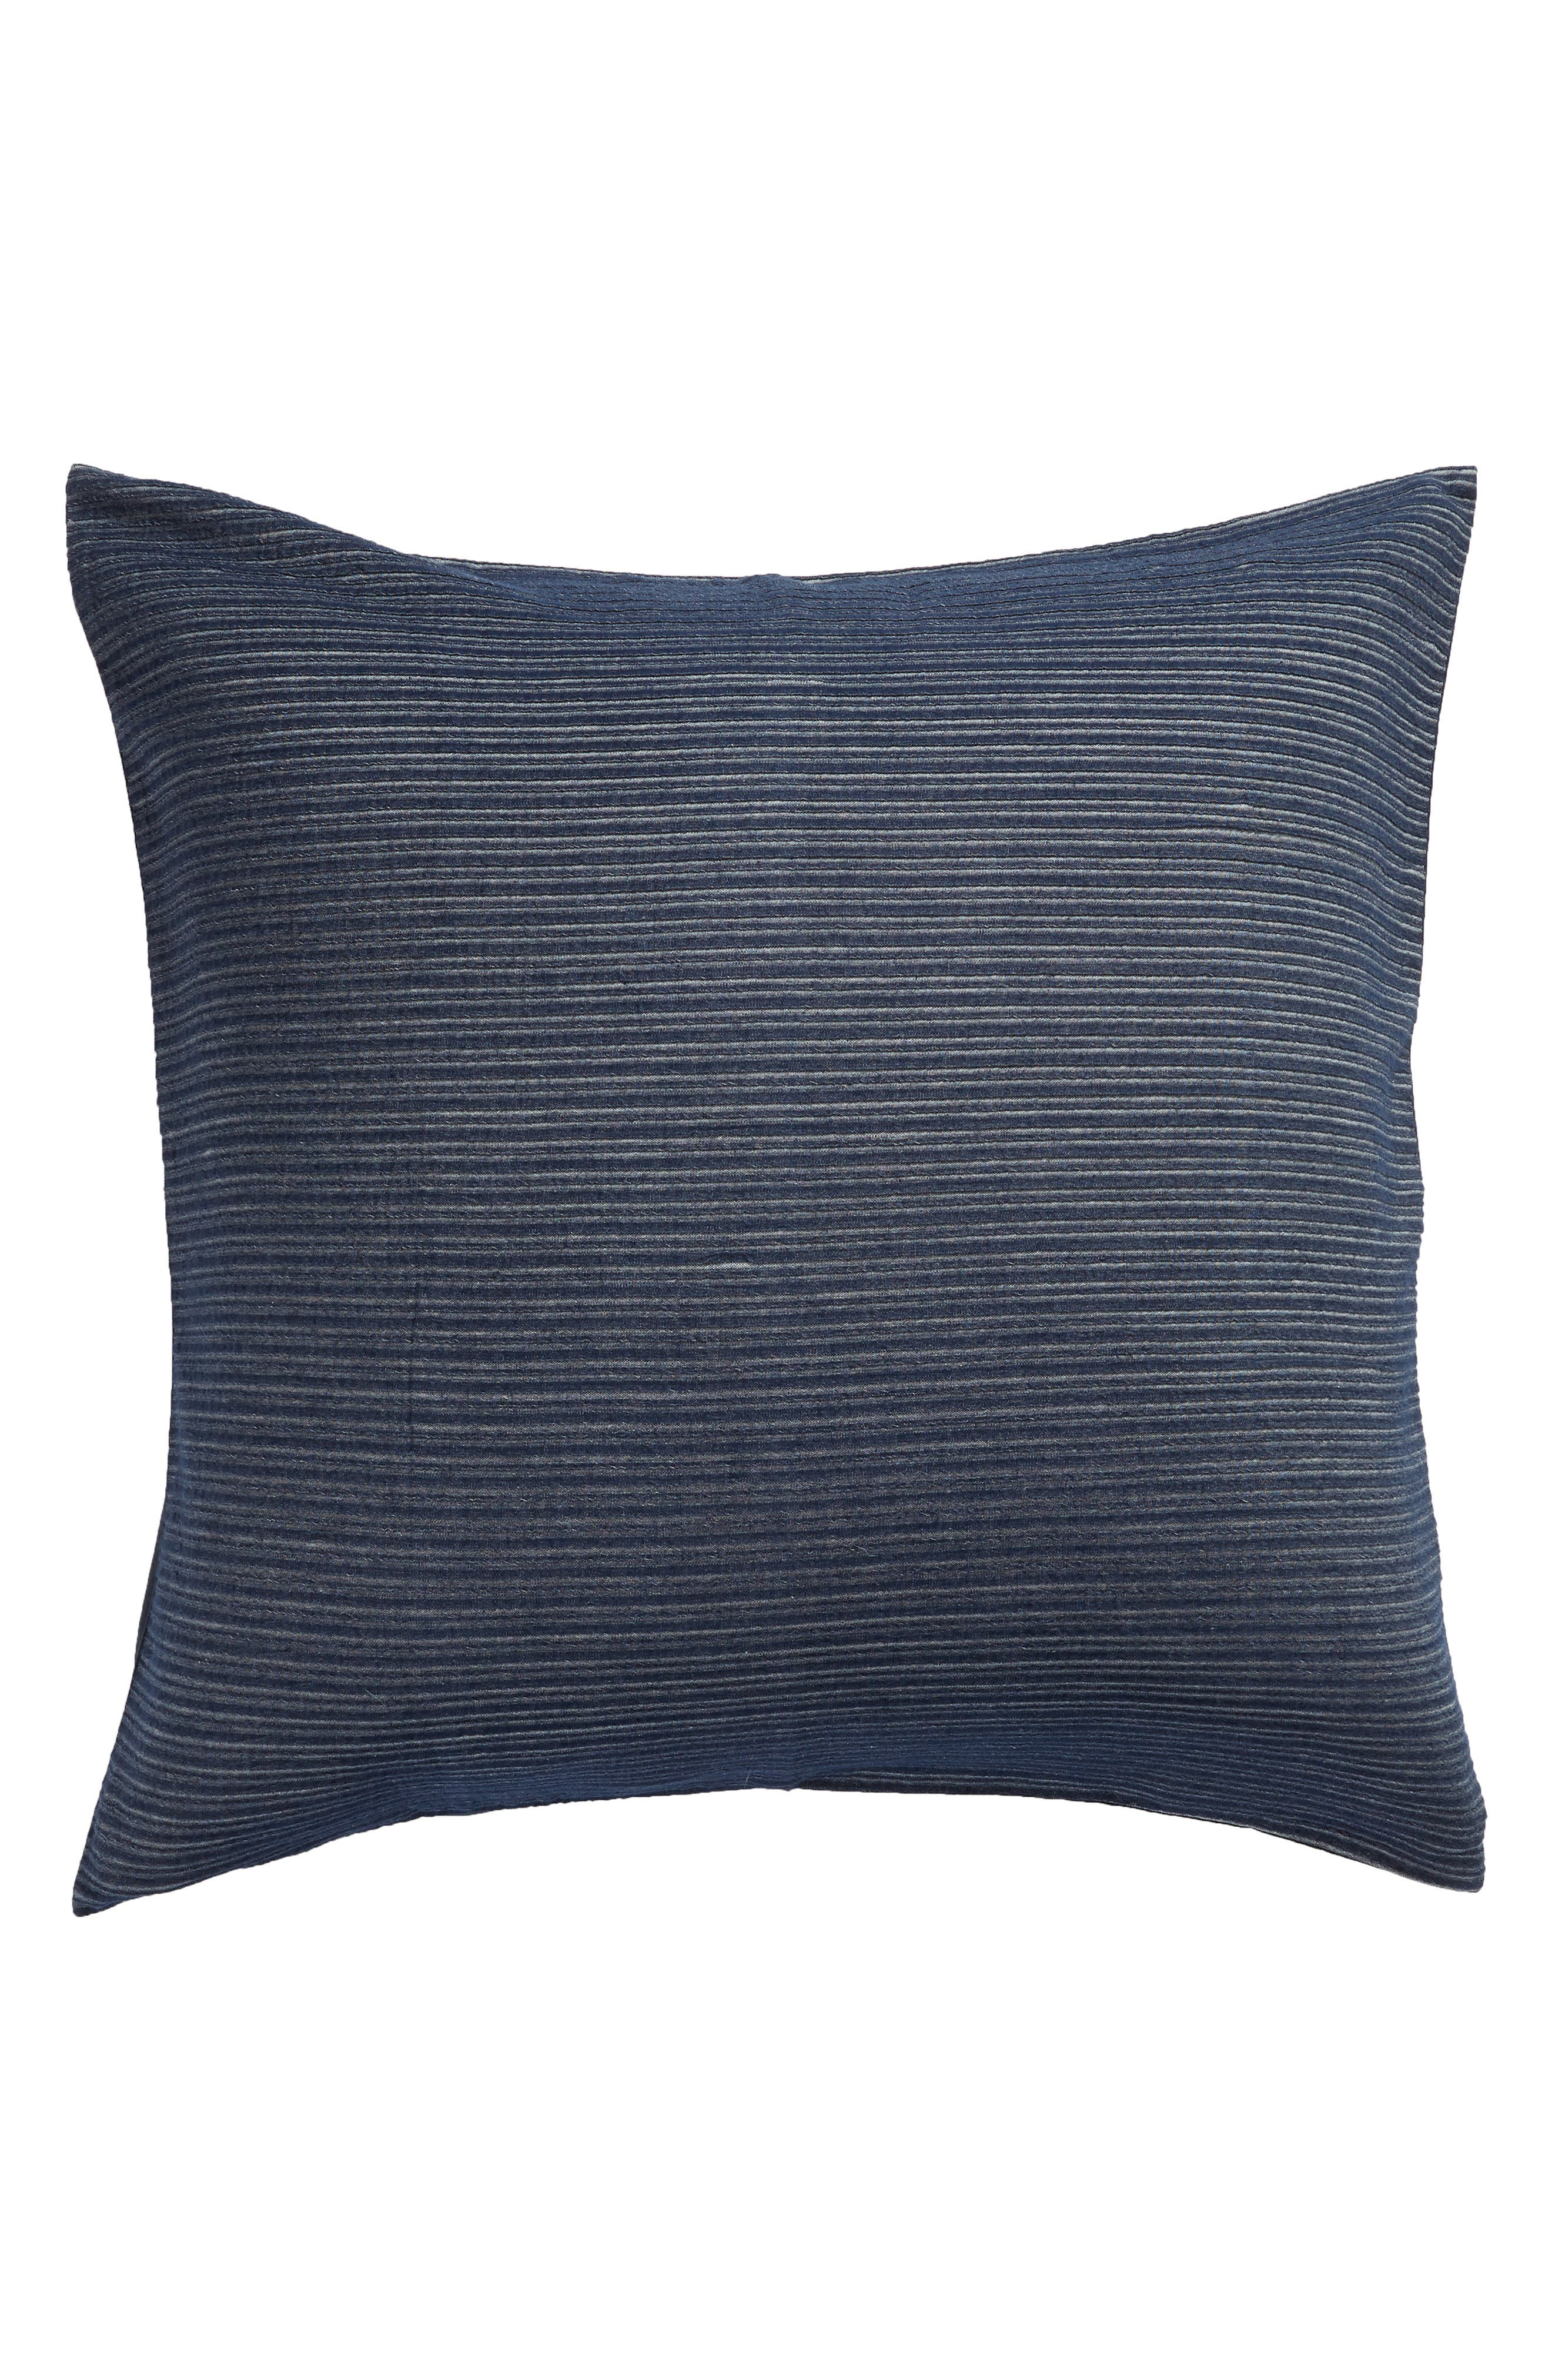 TREASURE & BOND Textured Stripe Euro Sham, Main, color, NAVY BLUE